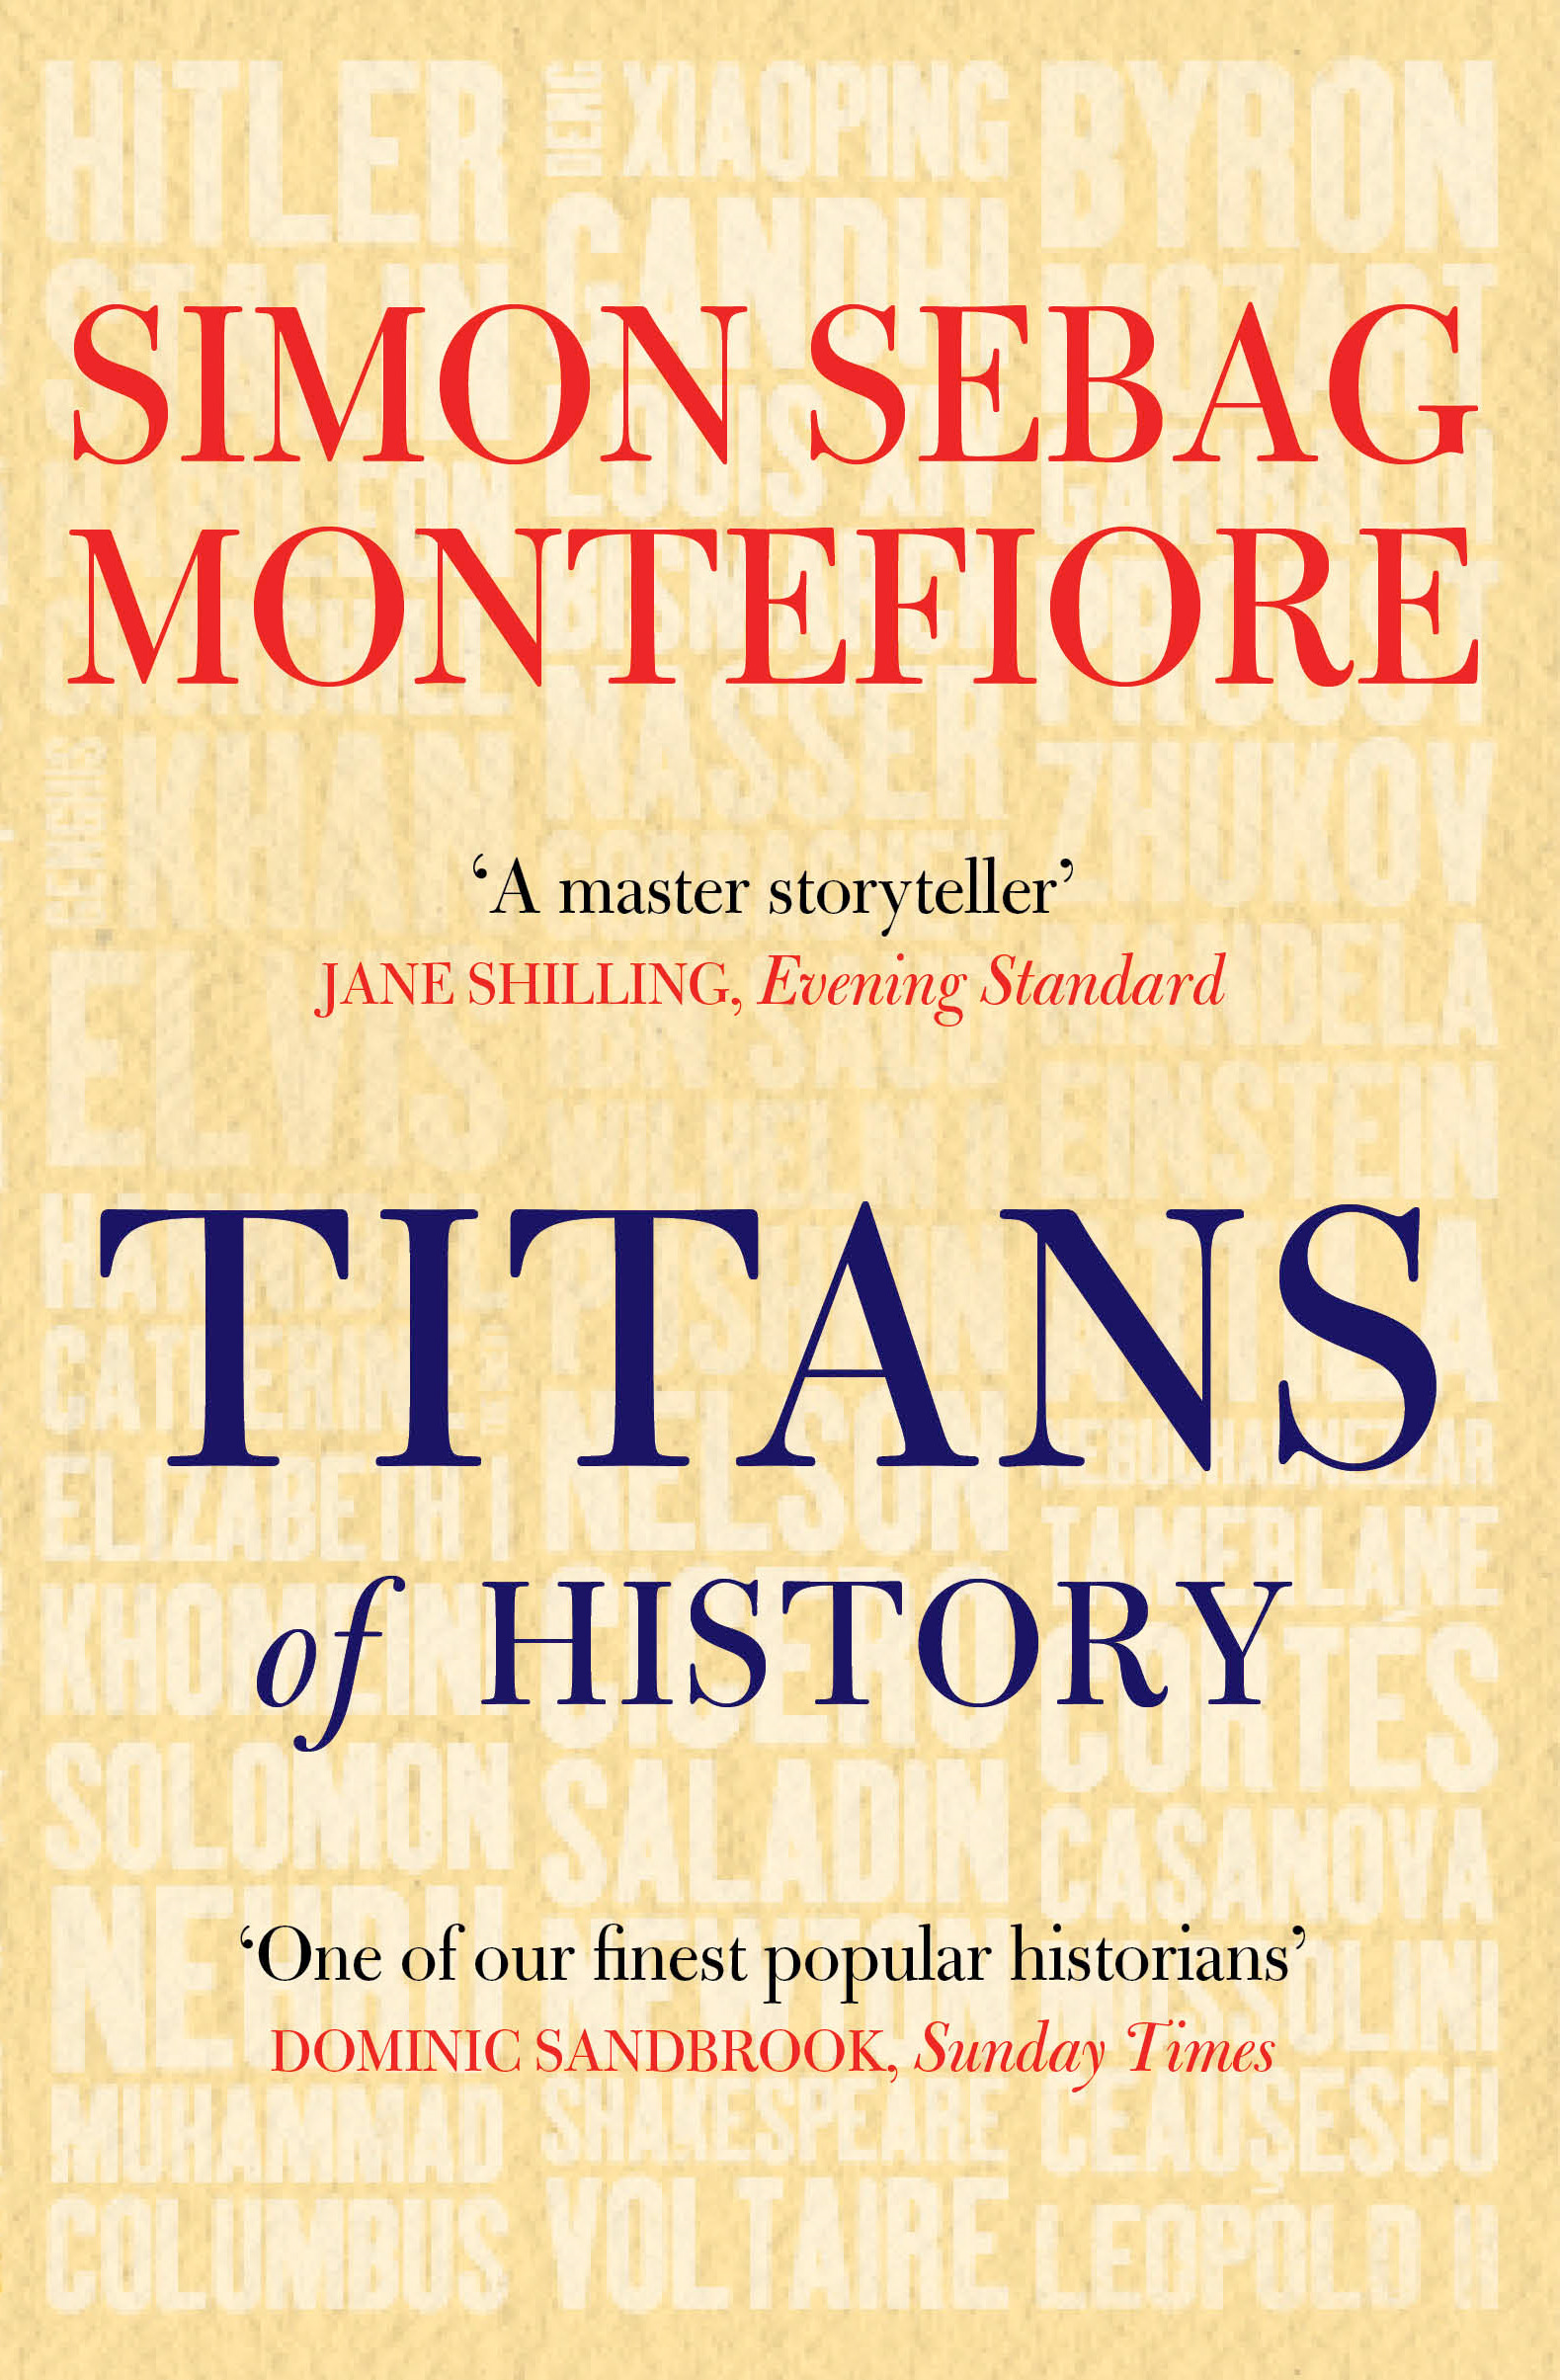 Titans of History By: Simon Sebag Montefiore